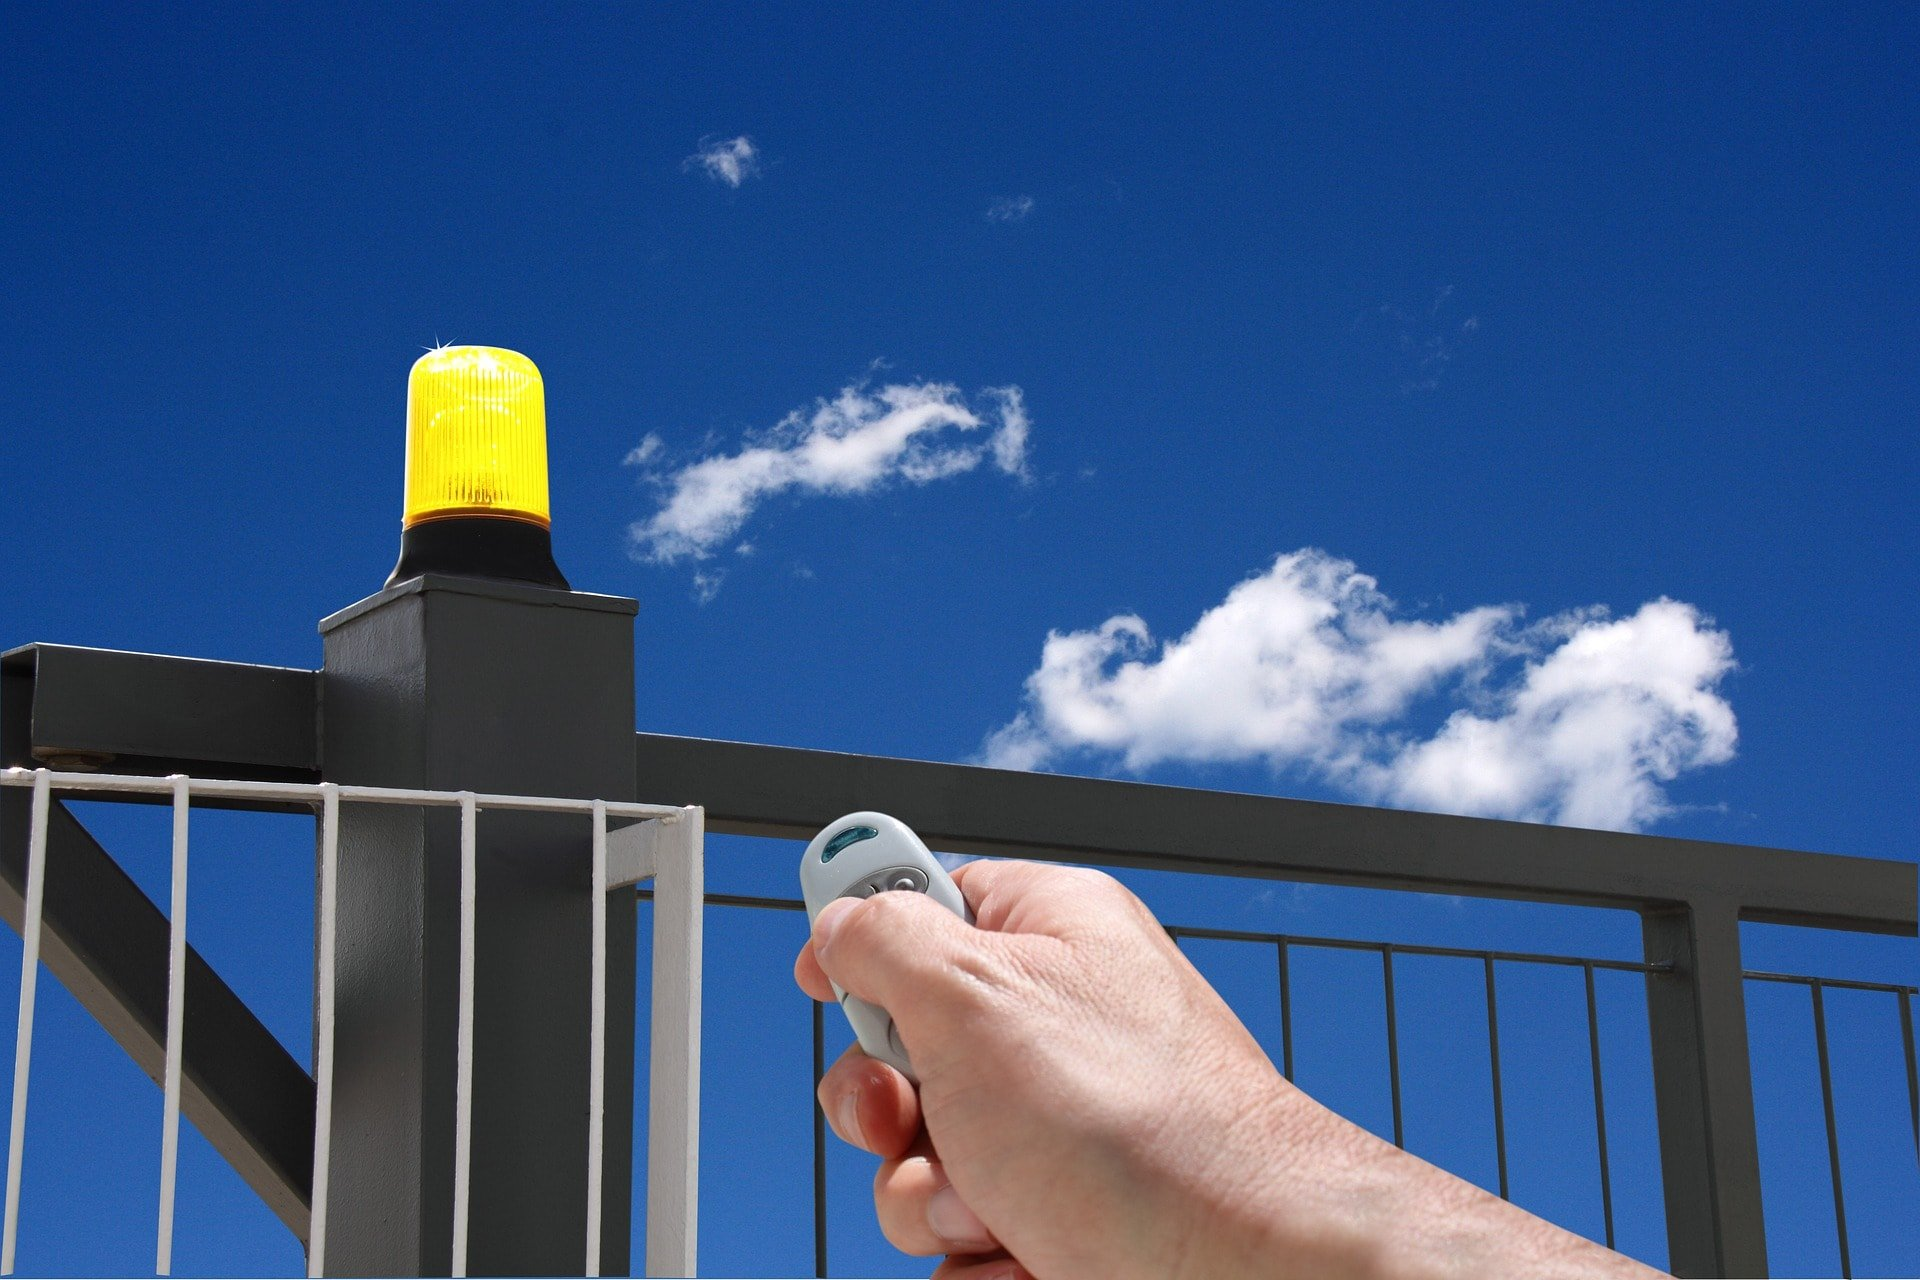 Automatic Gate Repair San Jose | Electric Gates Repair San Jose